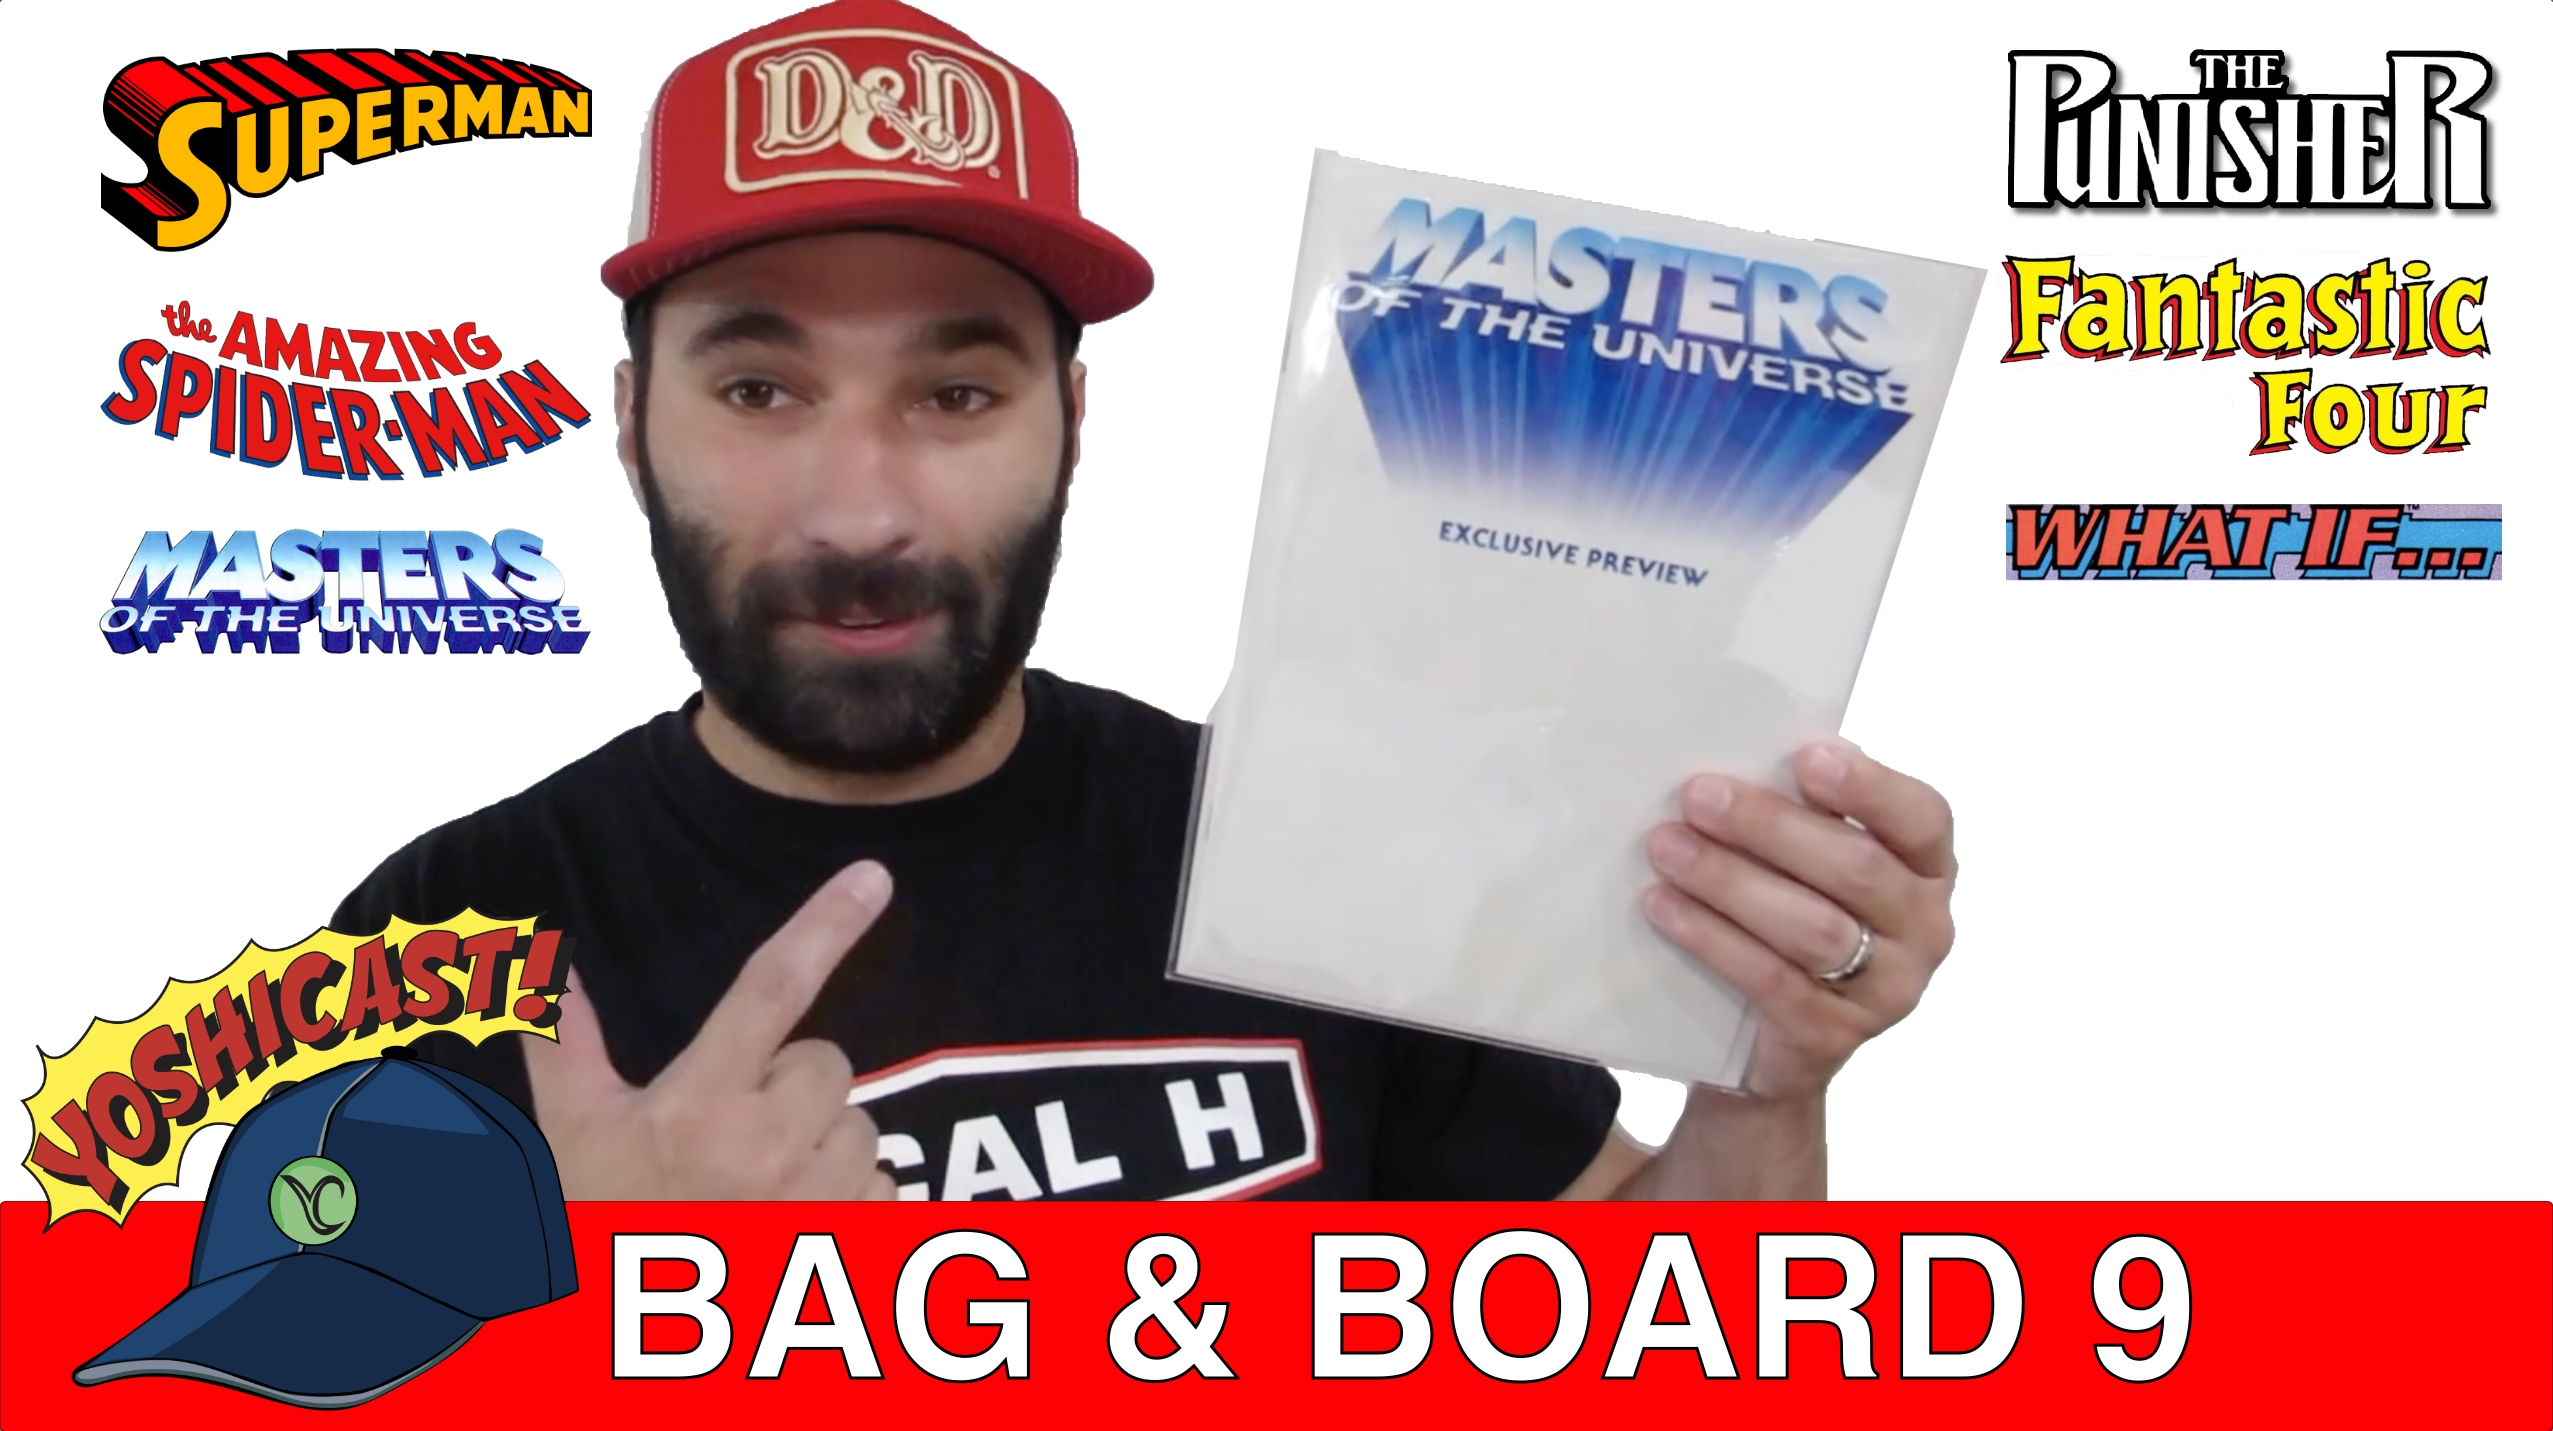 Bag & Board 9 | Master Of The Universe, PUNISHER, Superman, WHAT If, Fantastic Four